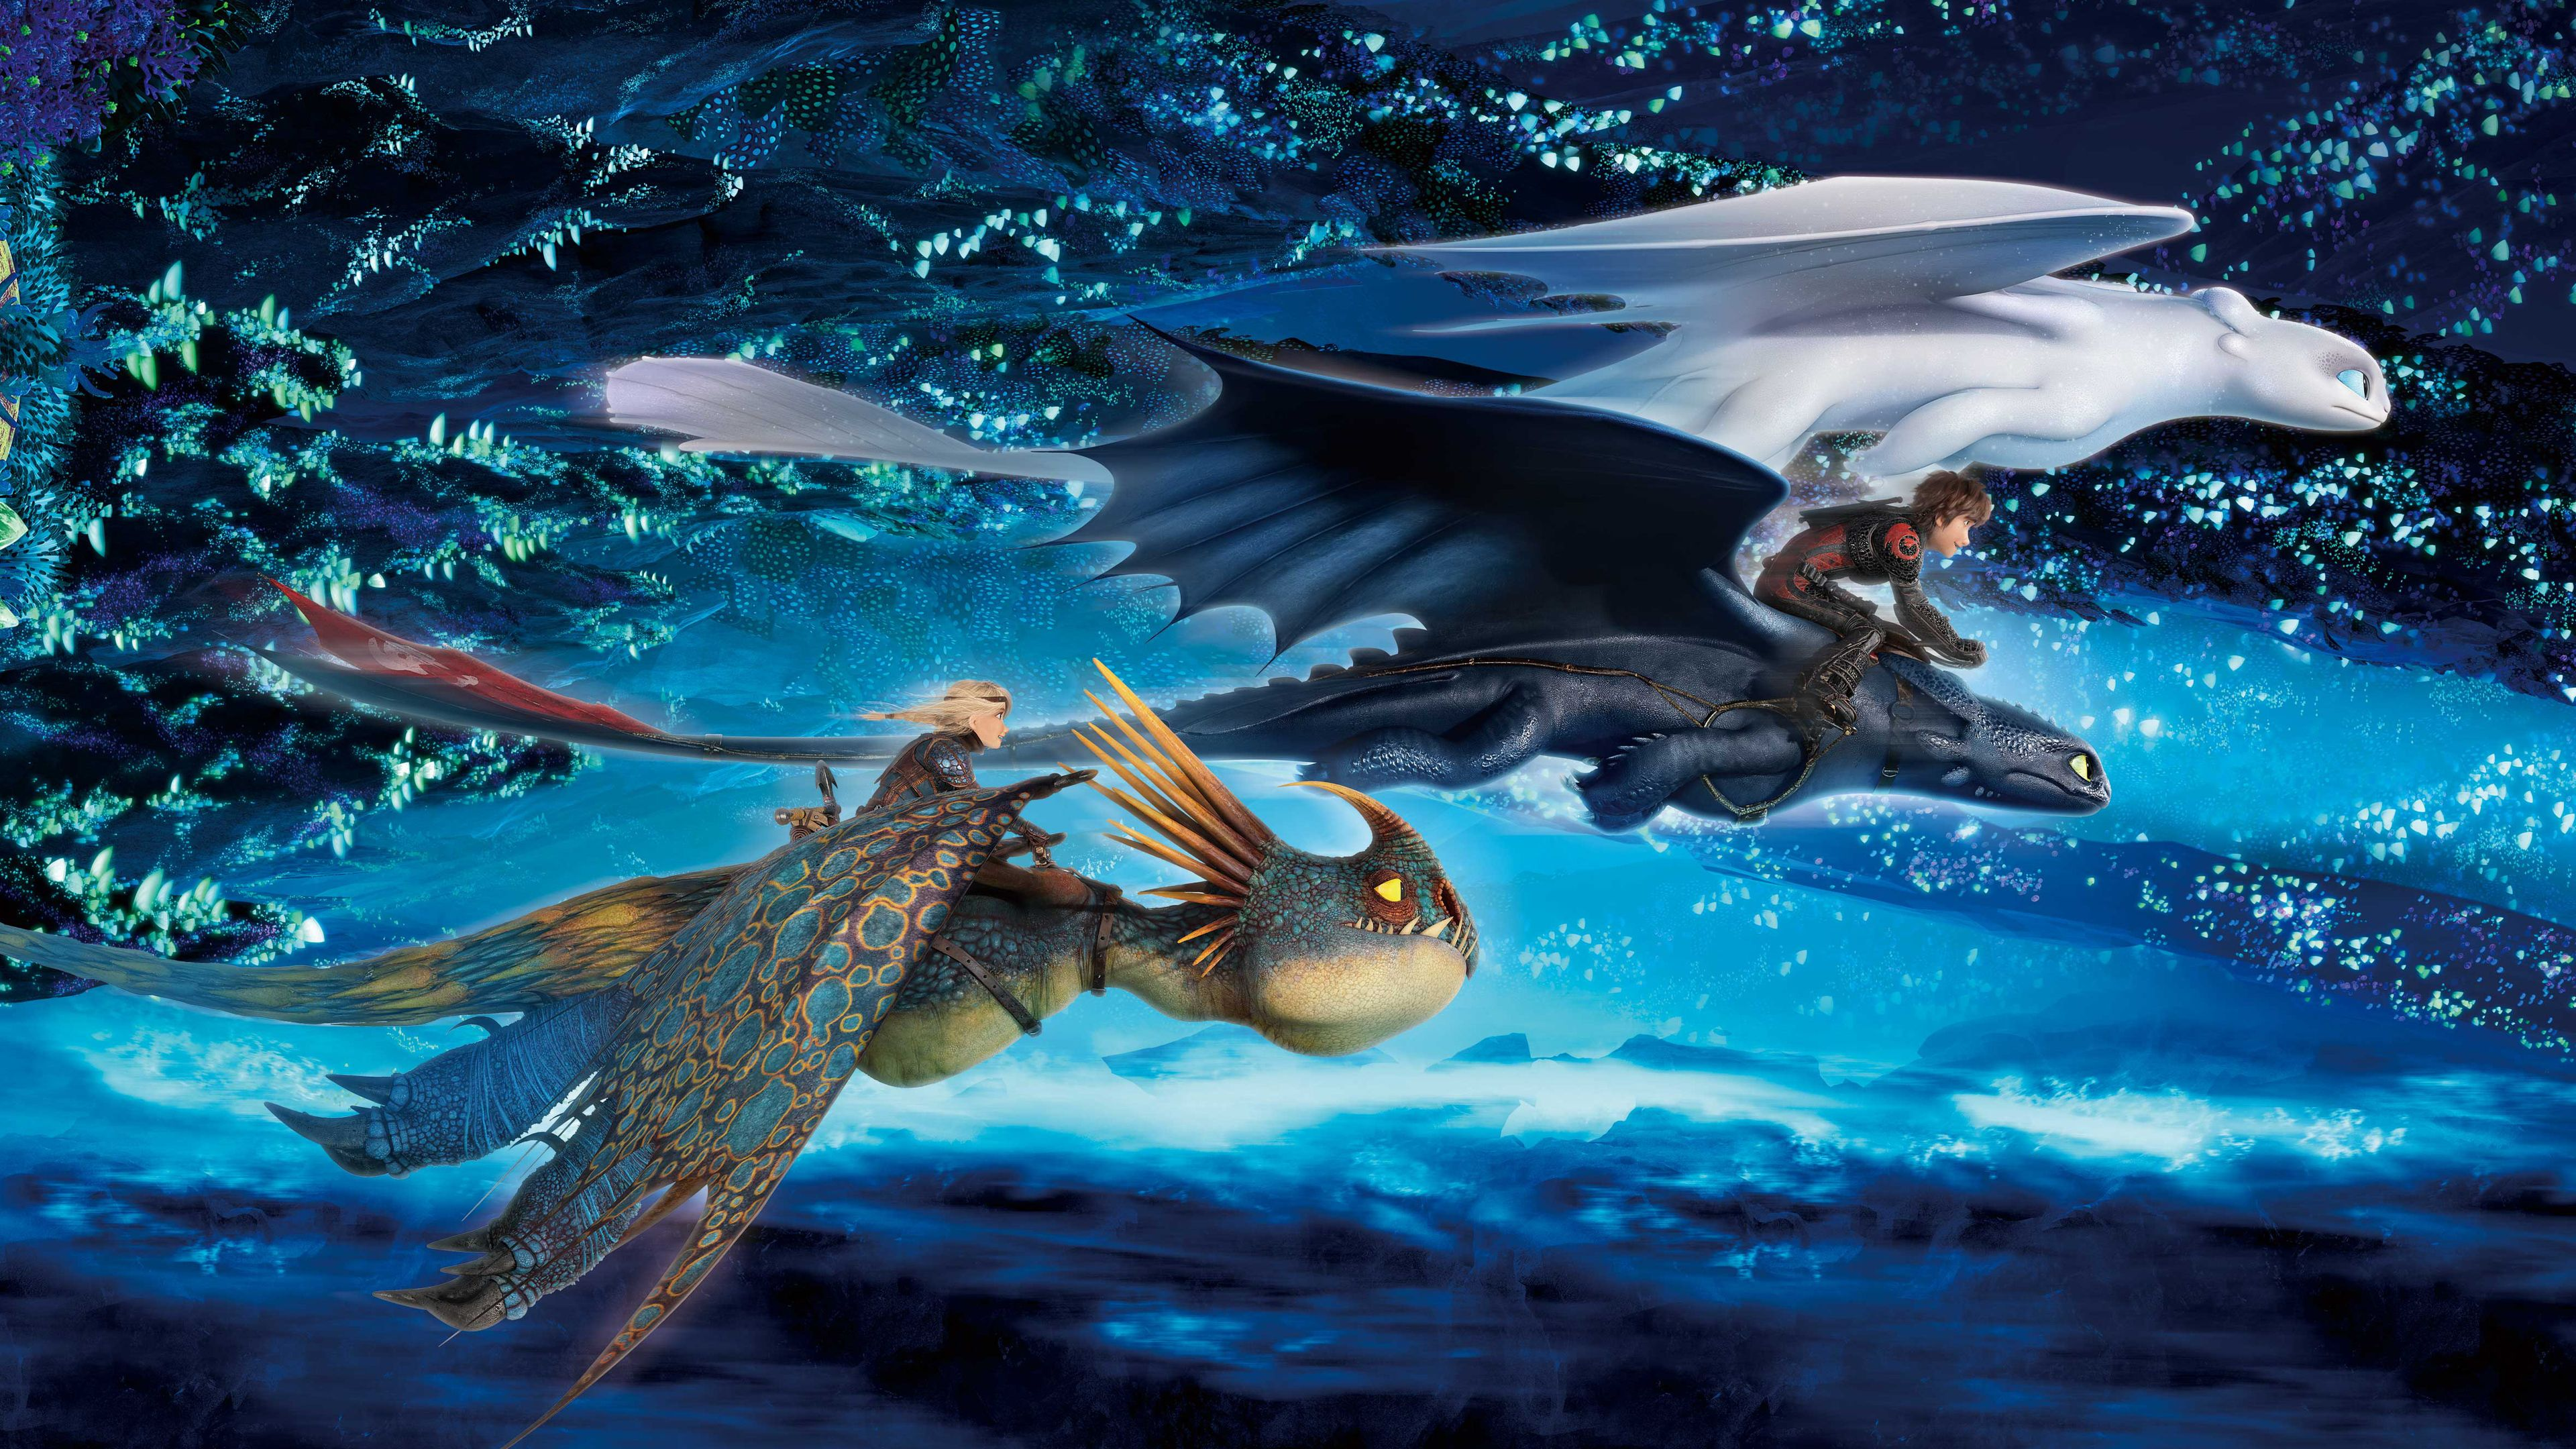 How To Train Your Dragon The Hidden World Imax Movies Wallpapers Light Fury Wallpapers How To How Train Your Dragon How To Train Your Dragon World Wallpaper